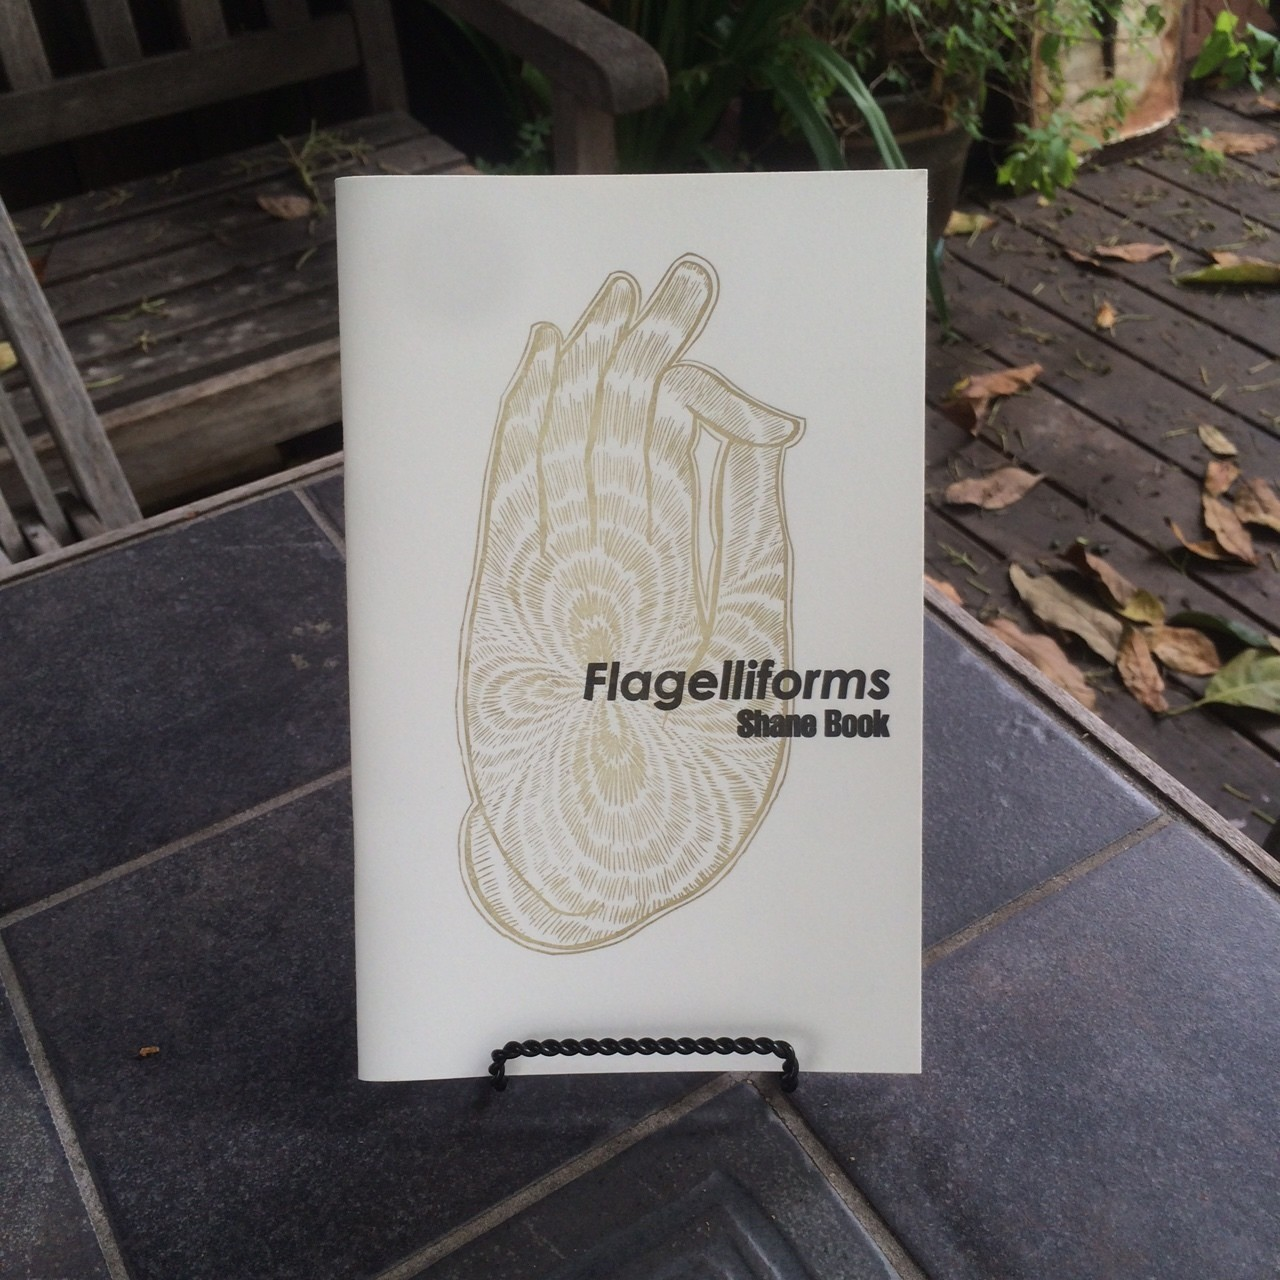 Flagelliforms, by Shane Book